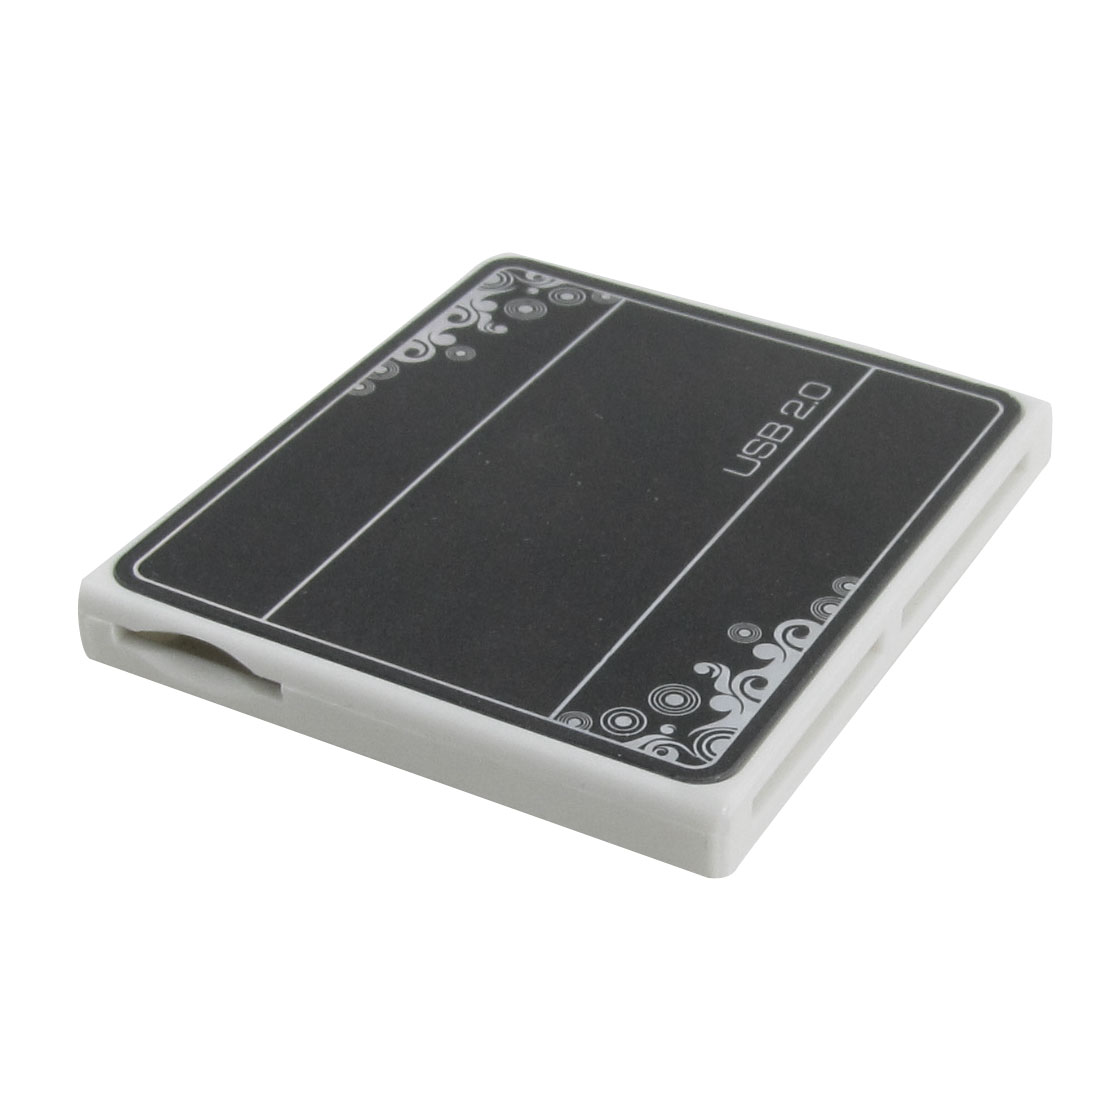 Mini SD T Flash RS-MMC USB 2.0 4 Slots Memory Card Reader Writer Black